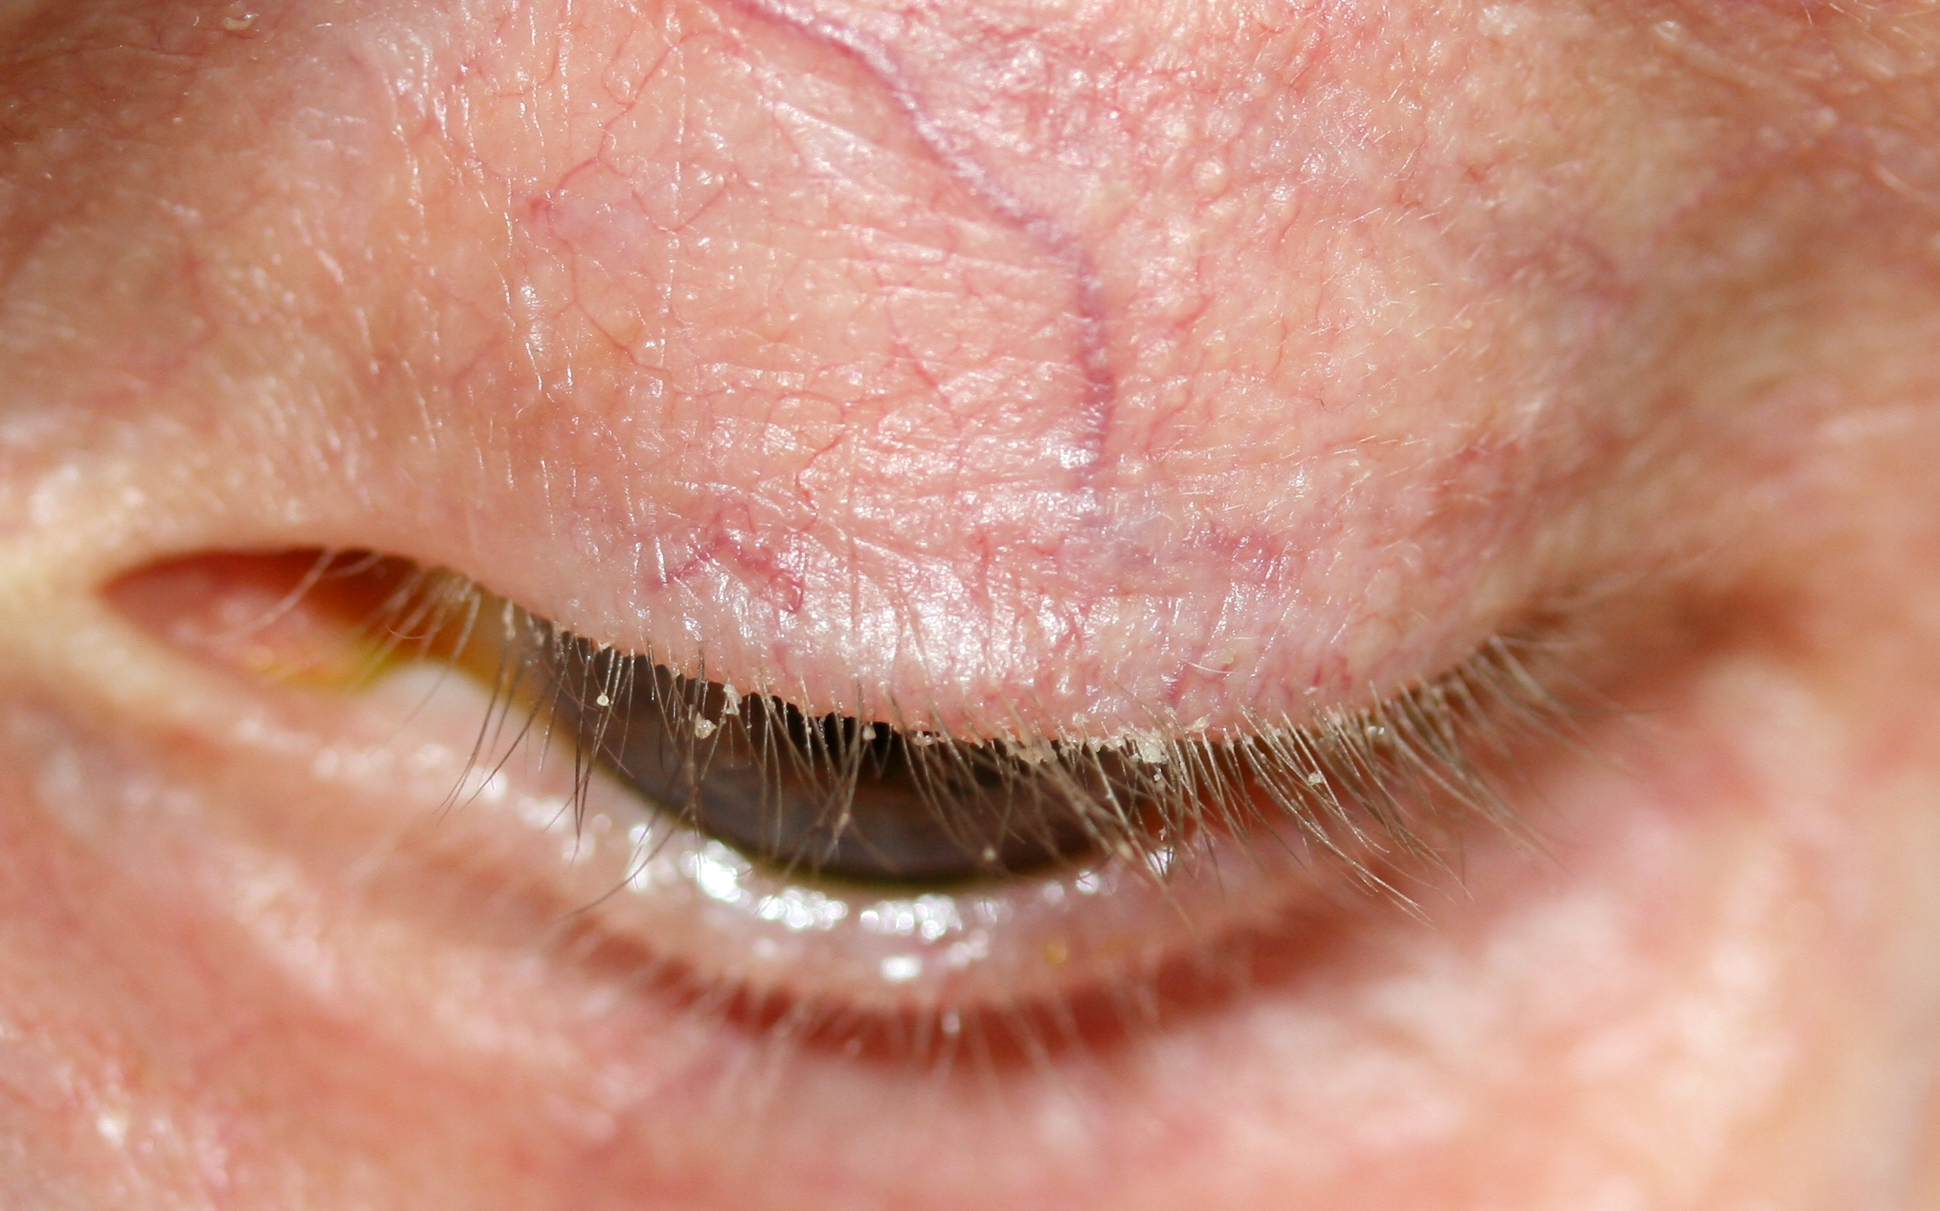 blepharitis symptoms causes diagnosis and treatment